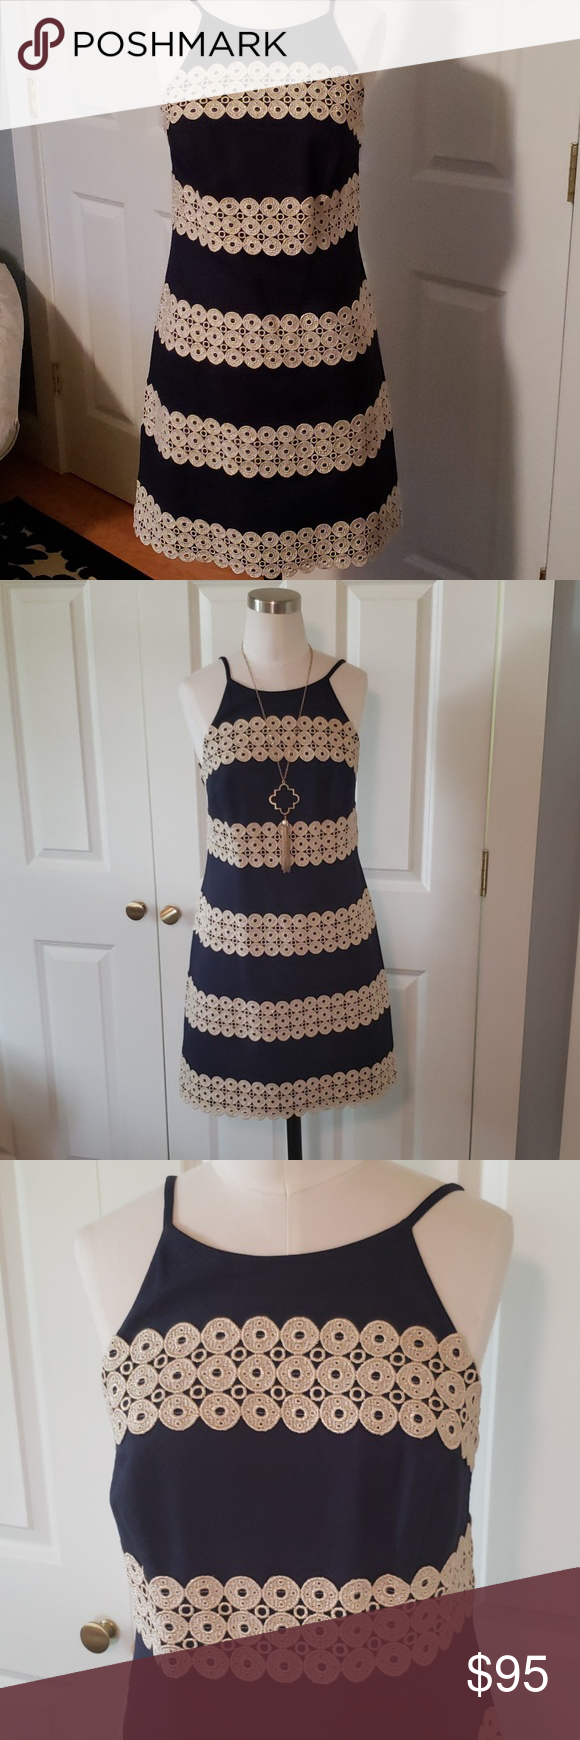 Nwot Lilly Pulitzer Gold Navy Dress Nwot Size 0 Never Worn Navy And Gold The Absolute Perfect Shift Dress Wedding Guest Dress Or Navy Dress Dresses Lillies [ 1740 x 580 Pixel ]